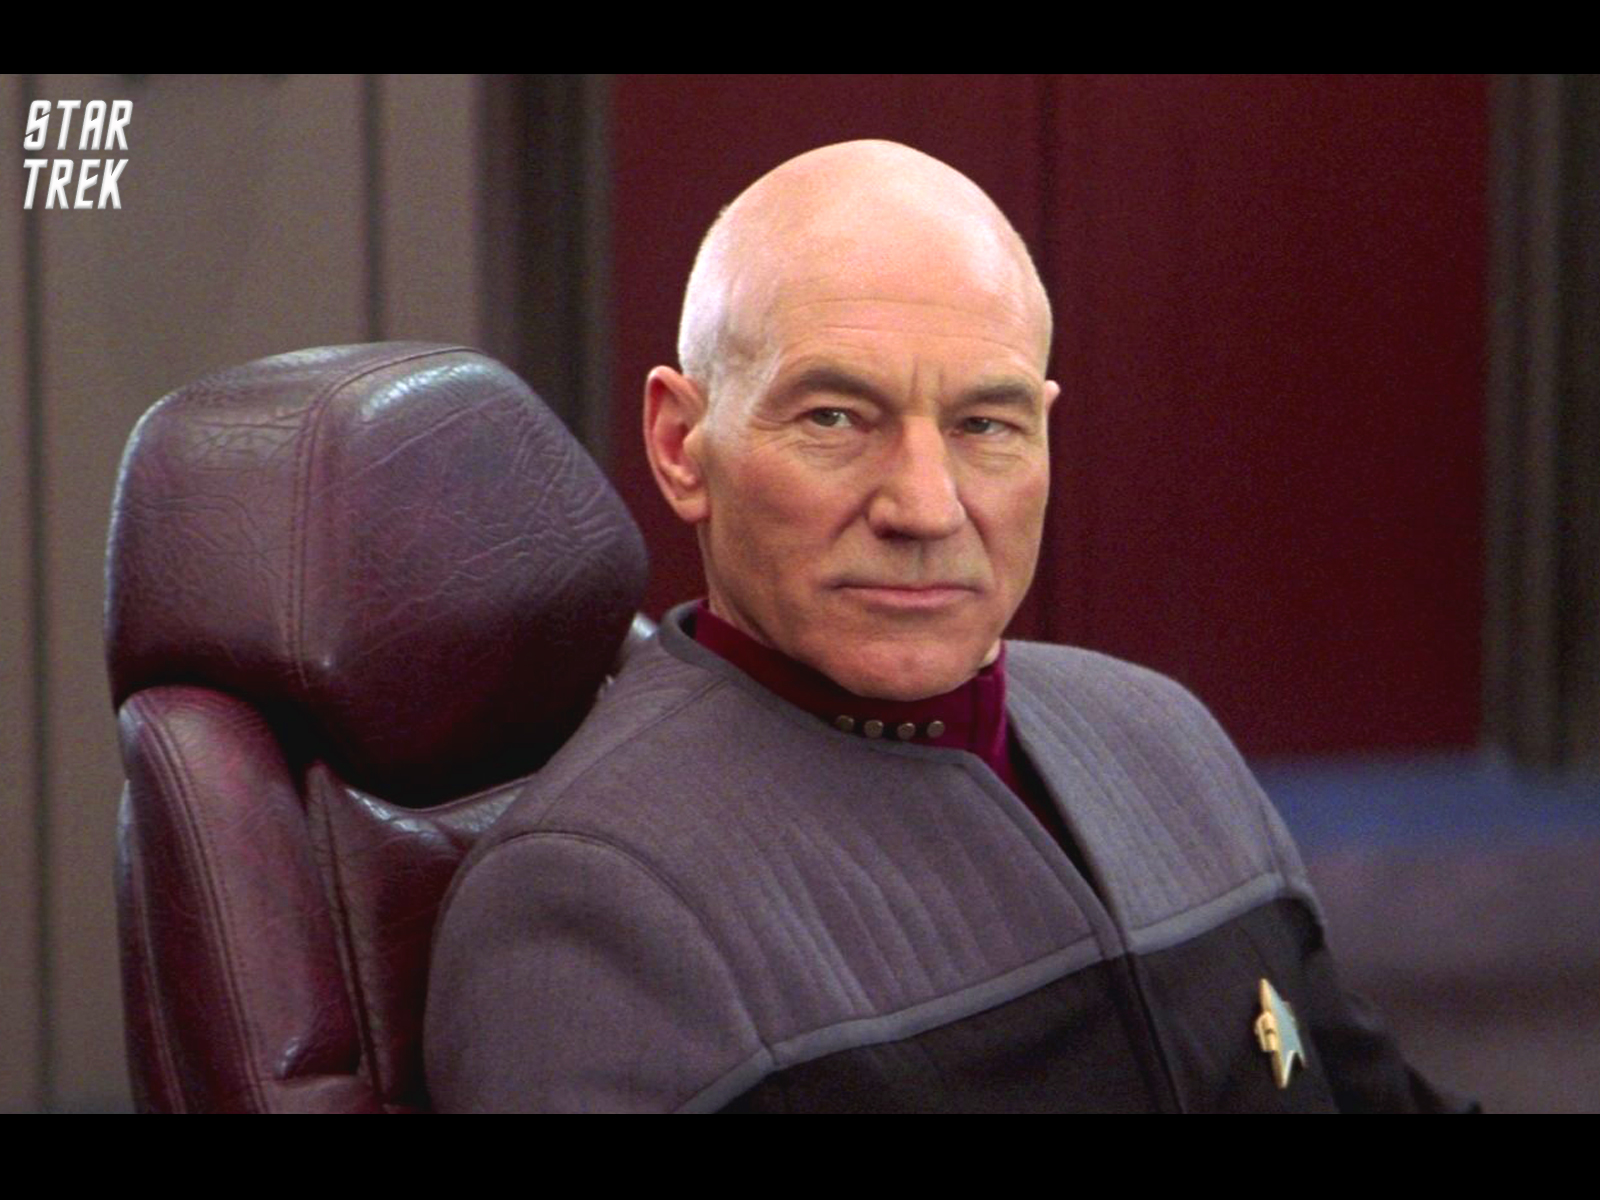 Star Trek The Next Generation Patrick Stewart. Free Star Trek computer desktop wallpaper, images